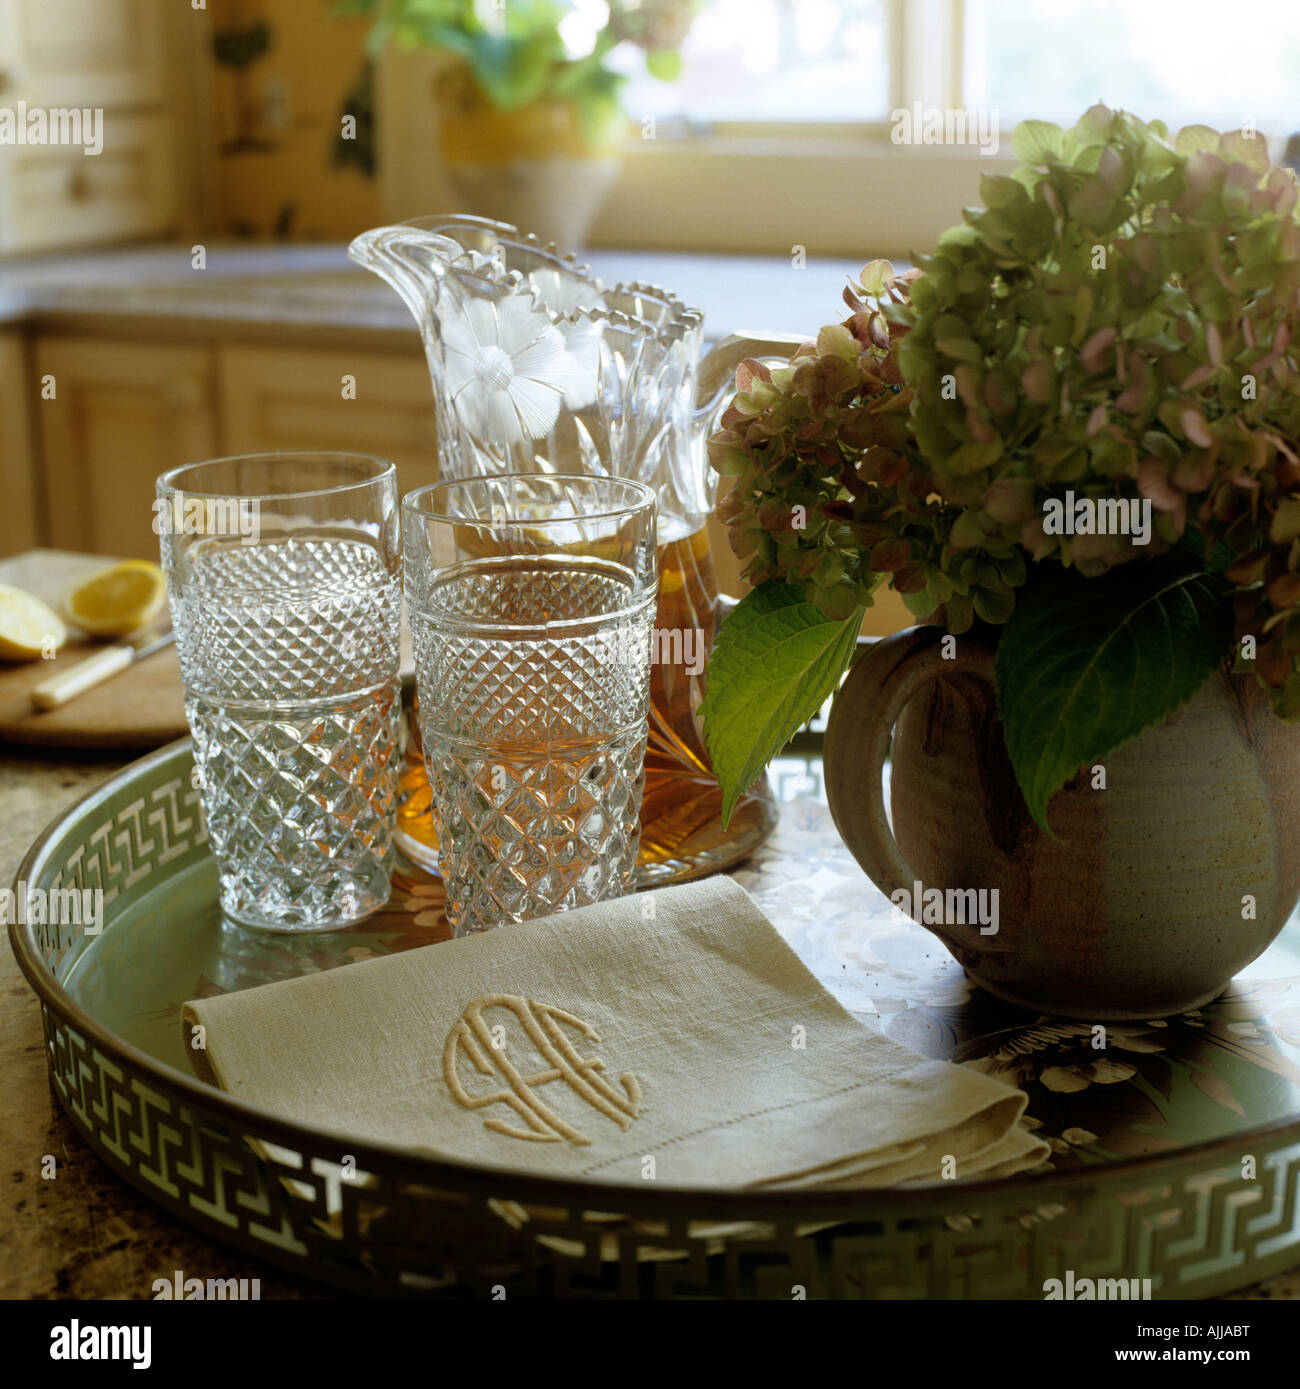 Refreshment tray with cut glassware, napkins and hydrangea in jug - Stock Image